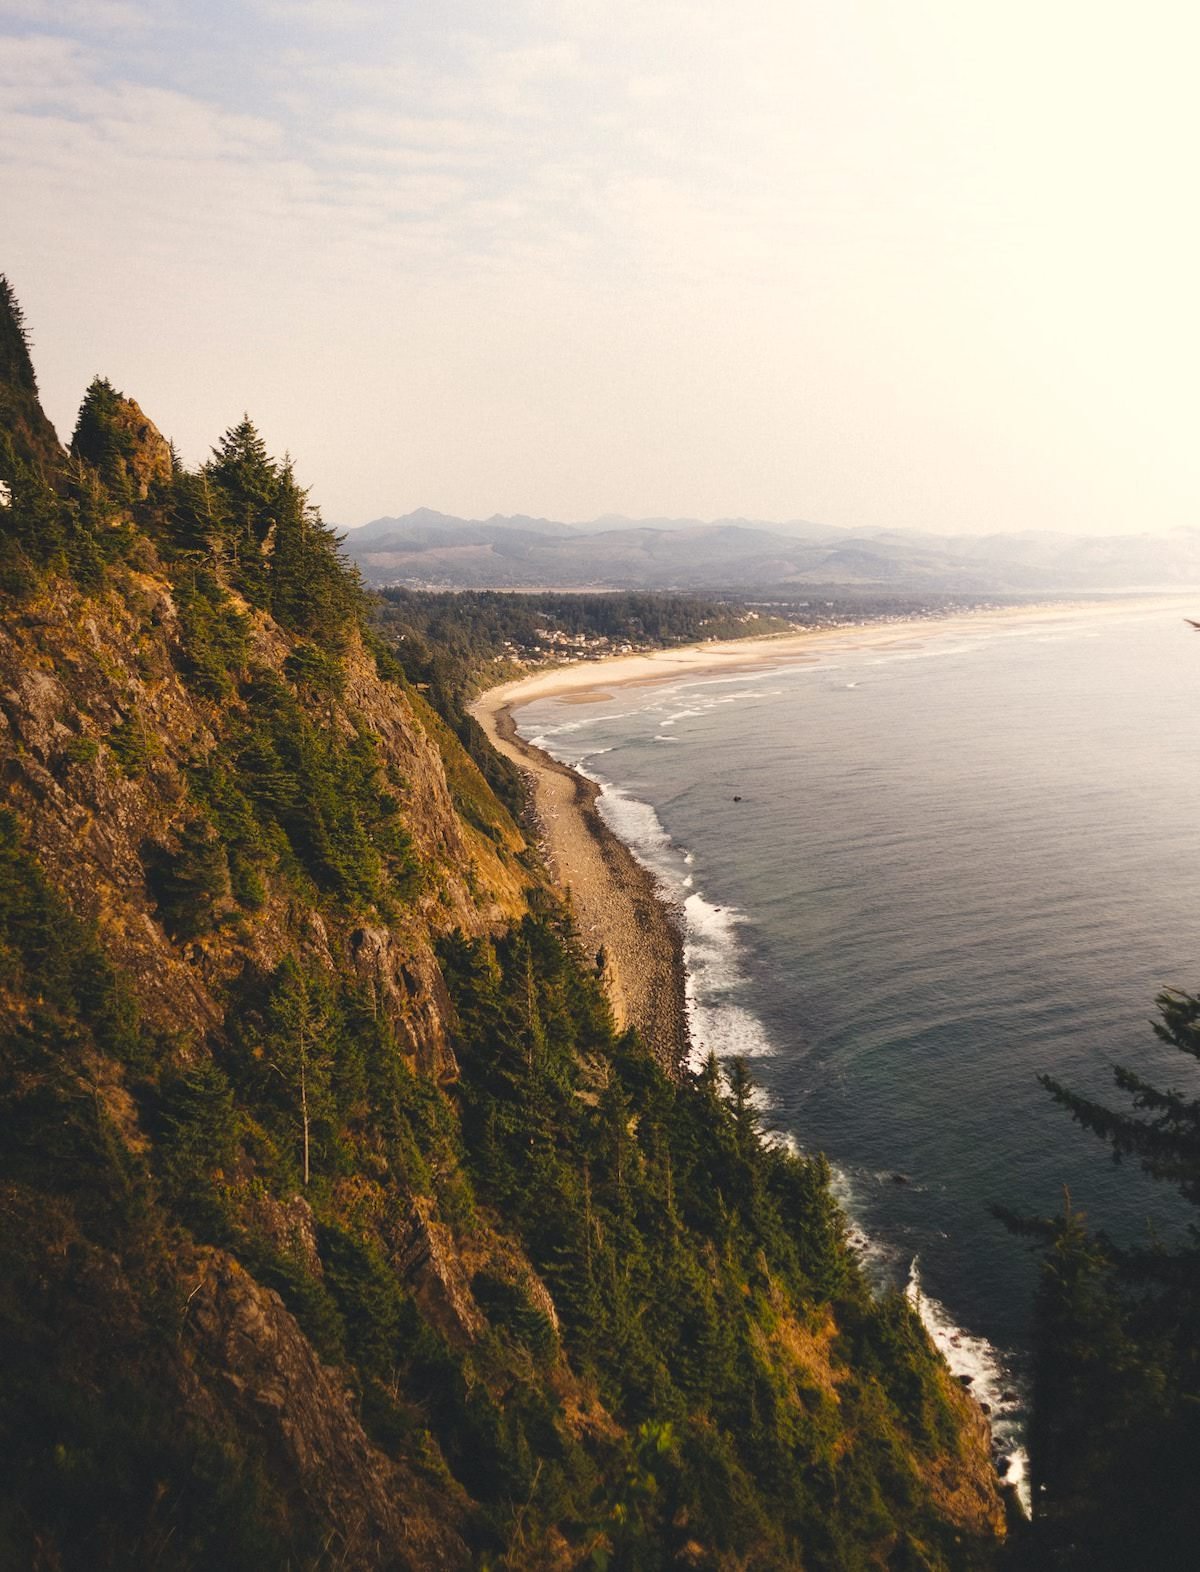 best photography spots on the oregon coast. Where are the best places to take photos in oregon